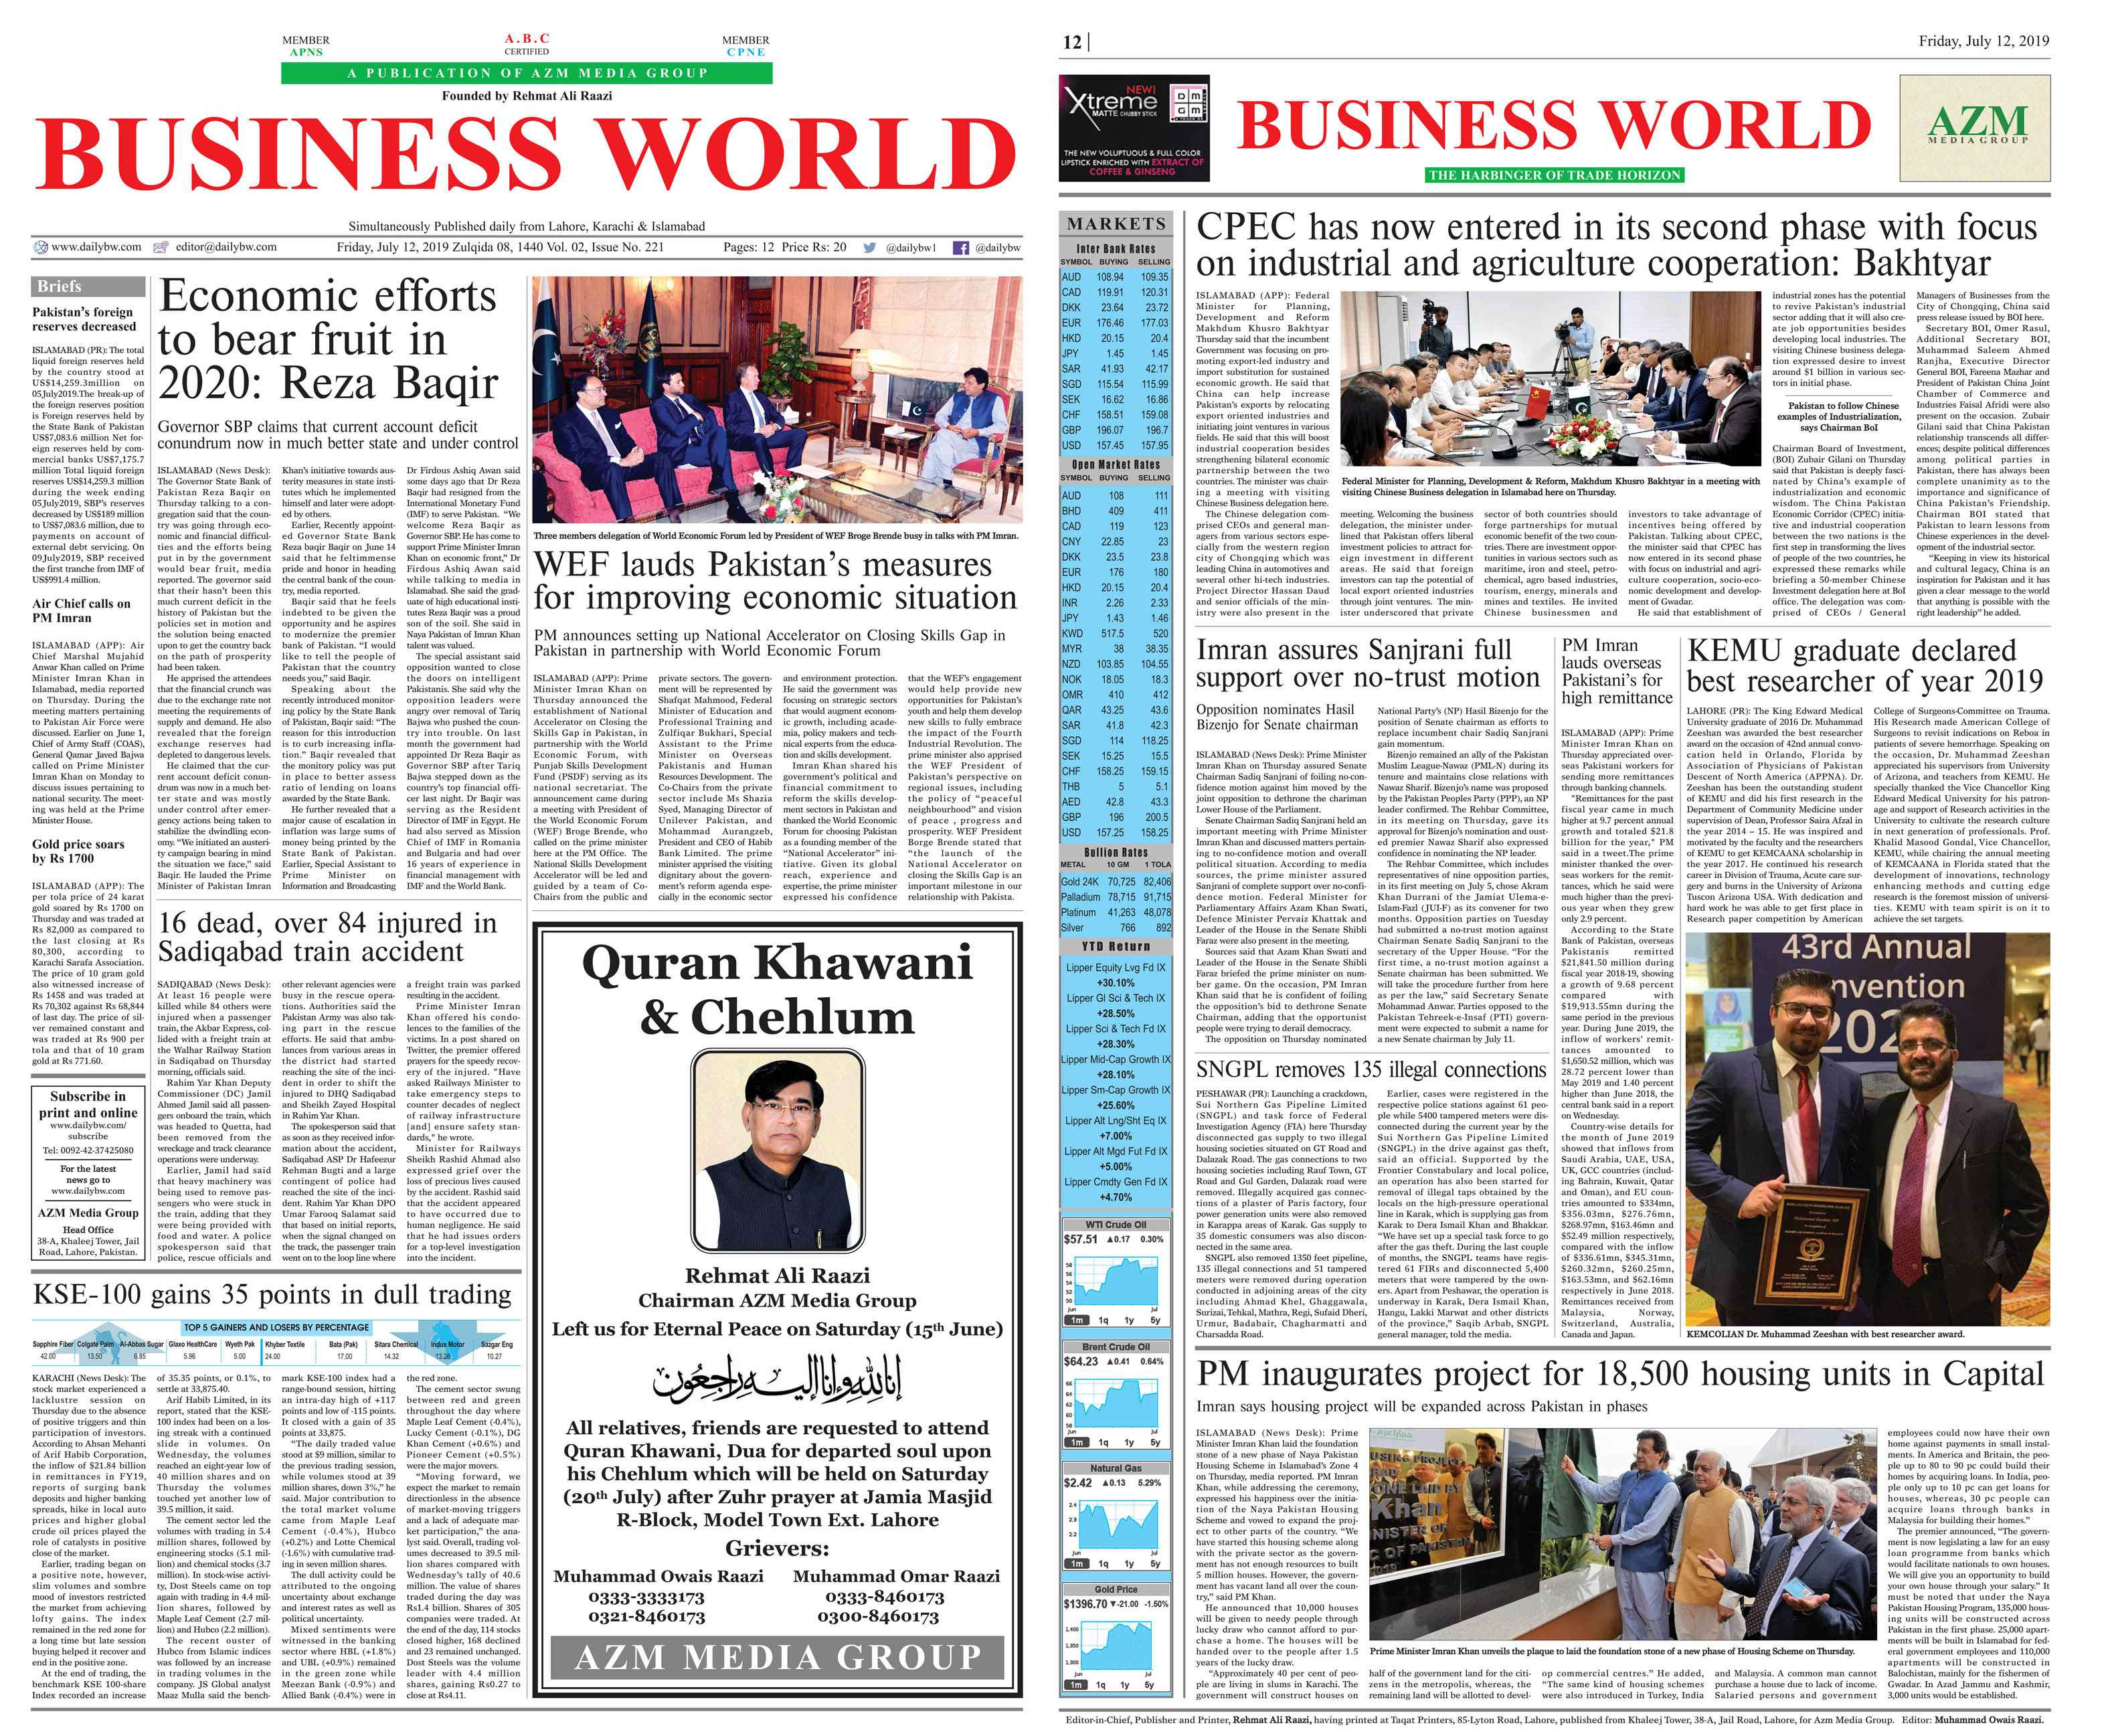 Daily Business World E-Paper 12th July 2019 - Daily Business